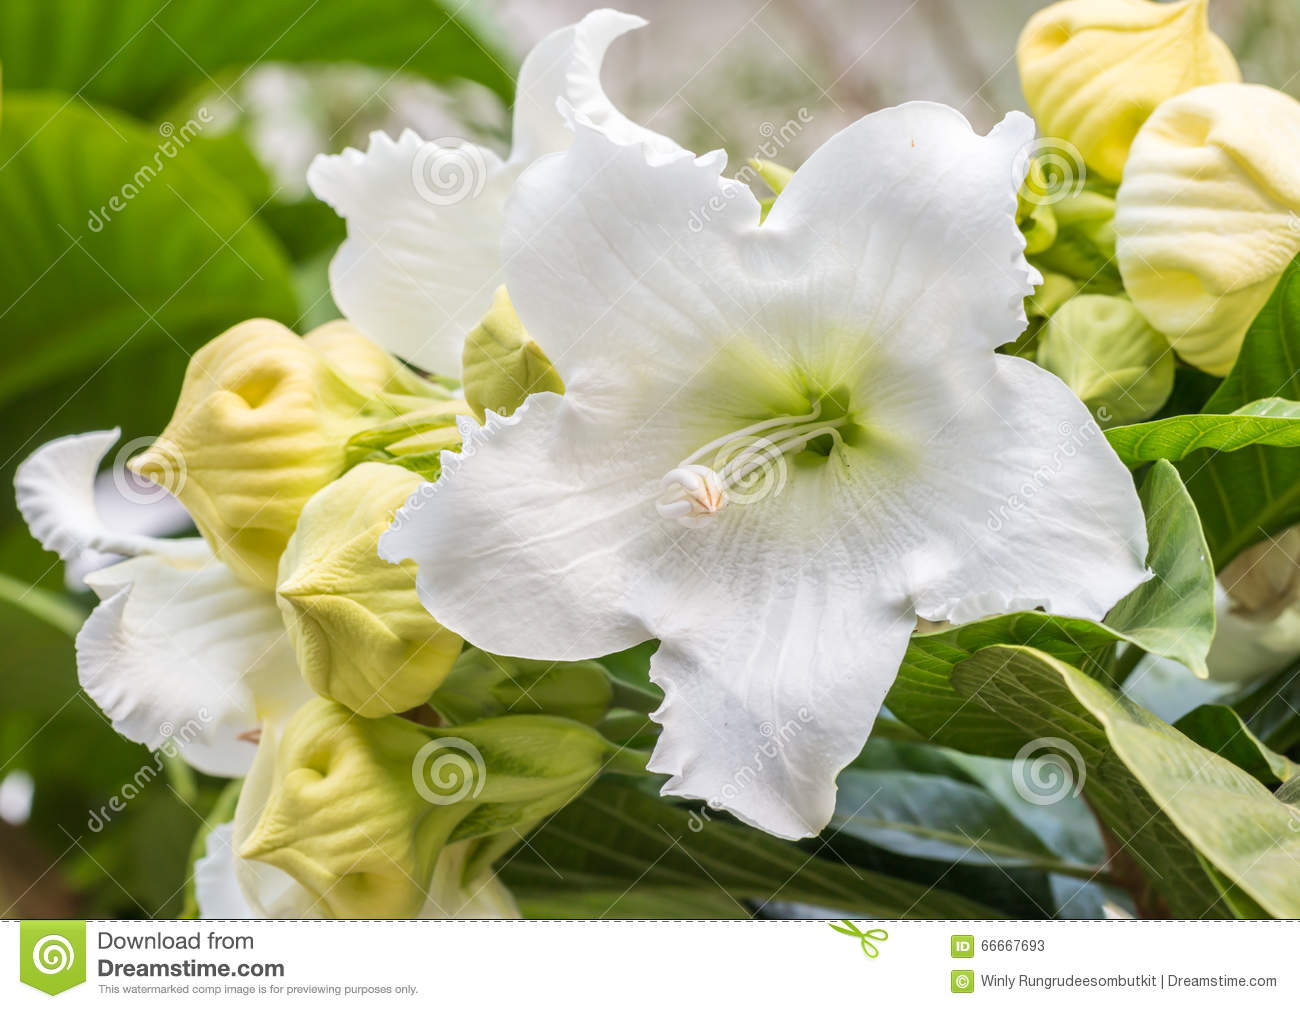 White flower easter lily vine stock image image of summer white flower easter lily vine izmirmasajfo